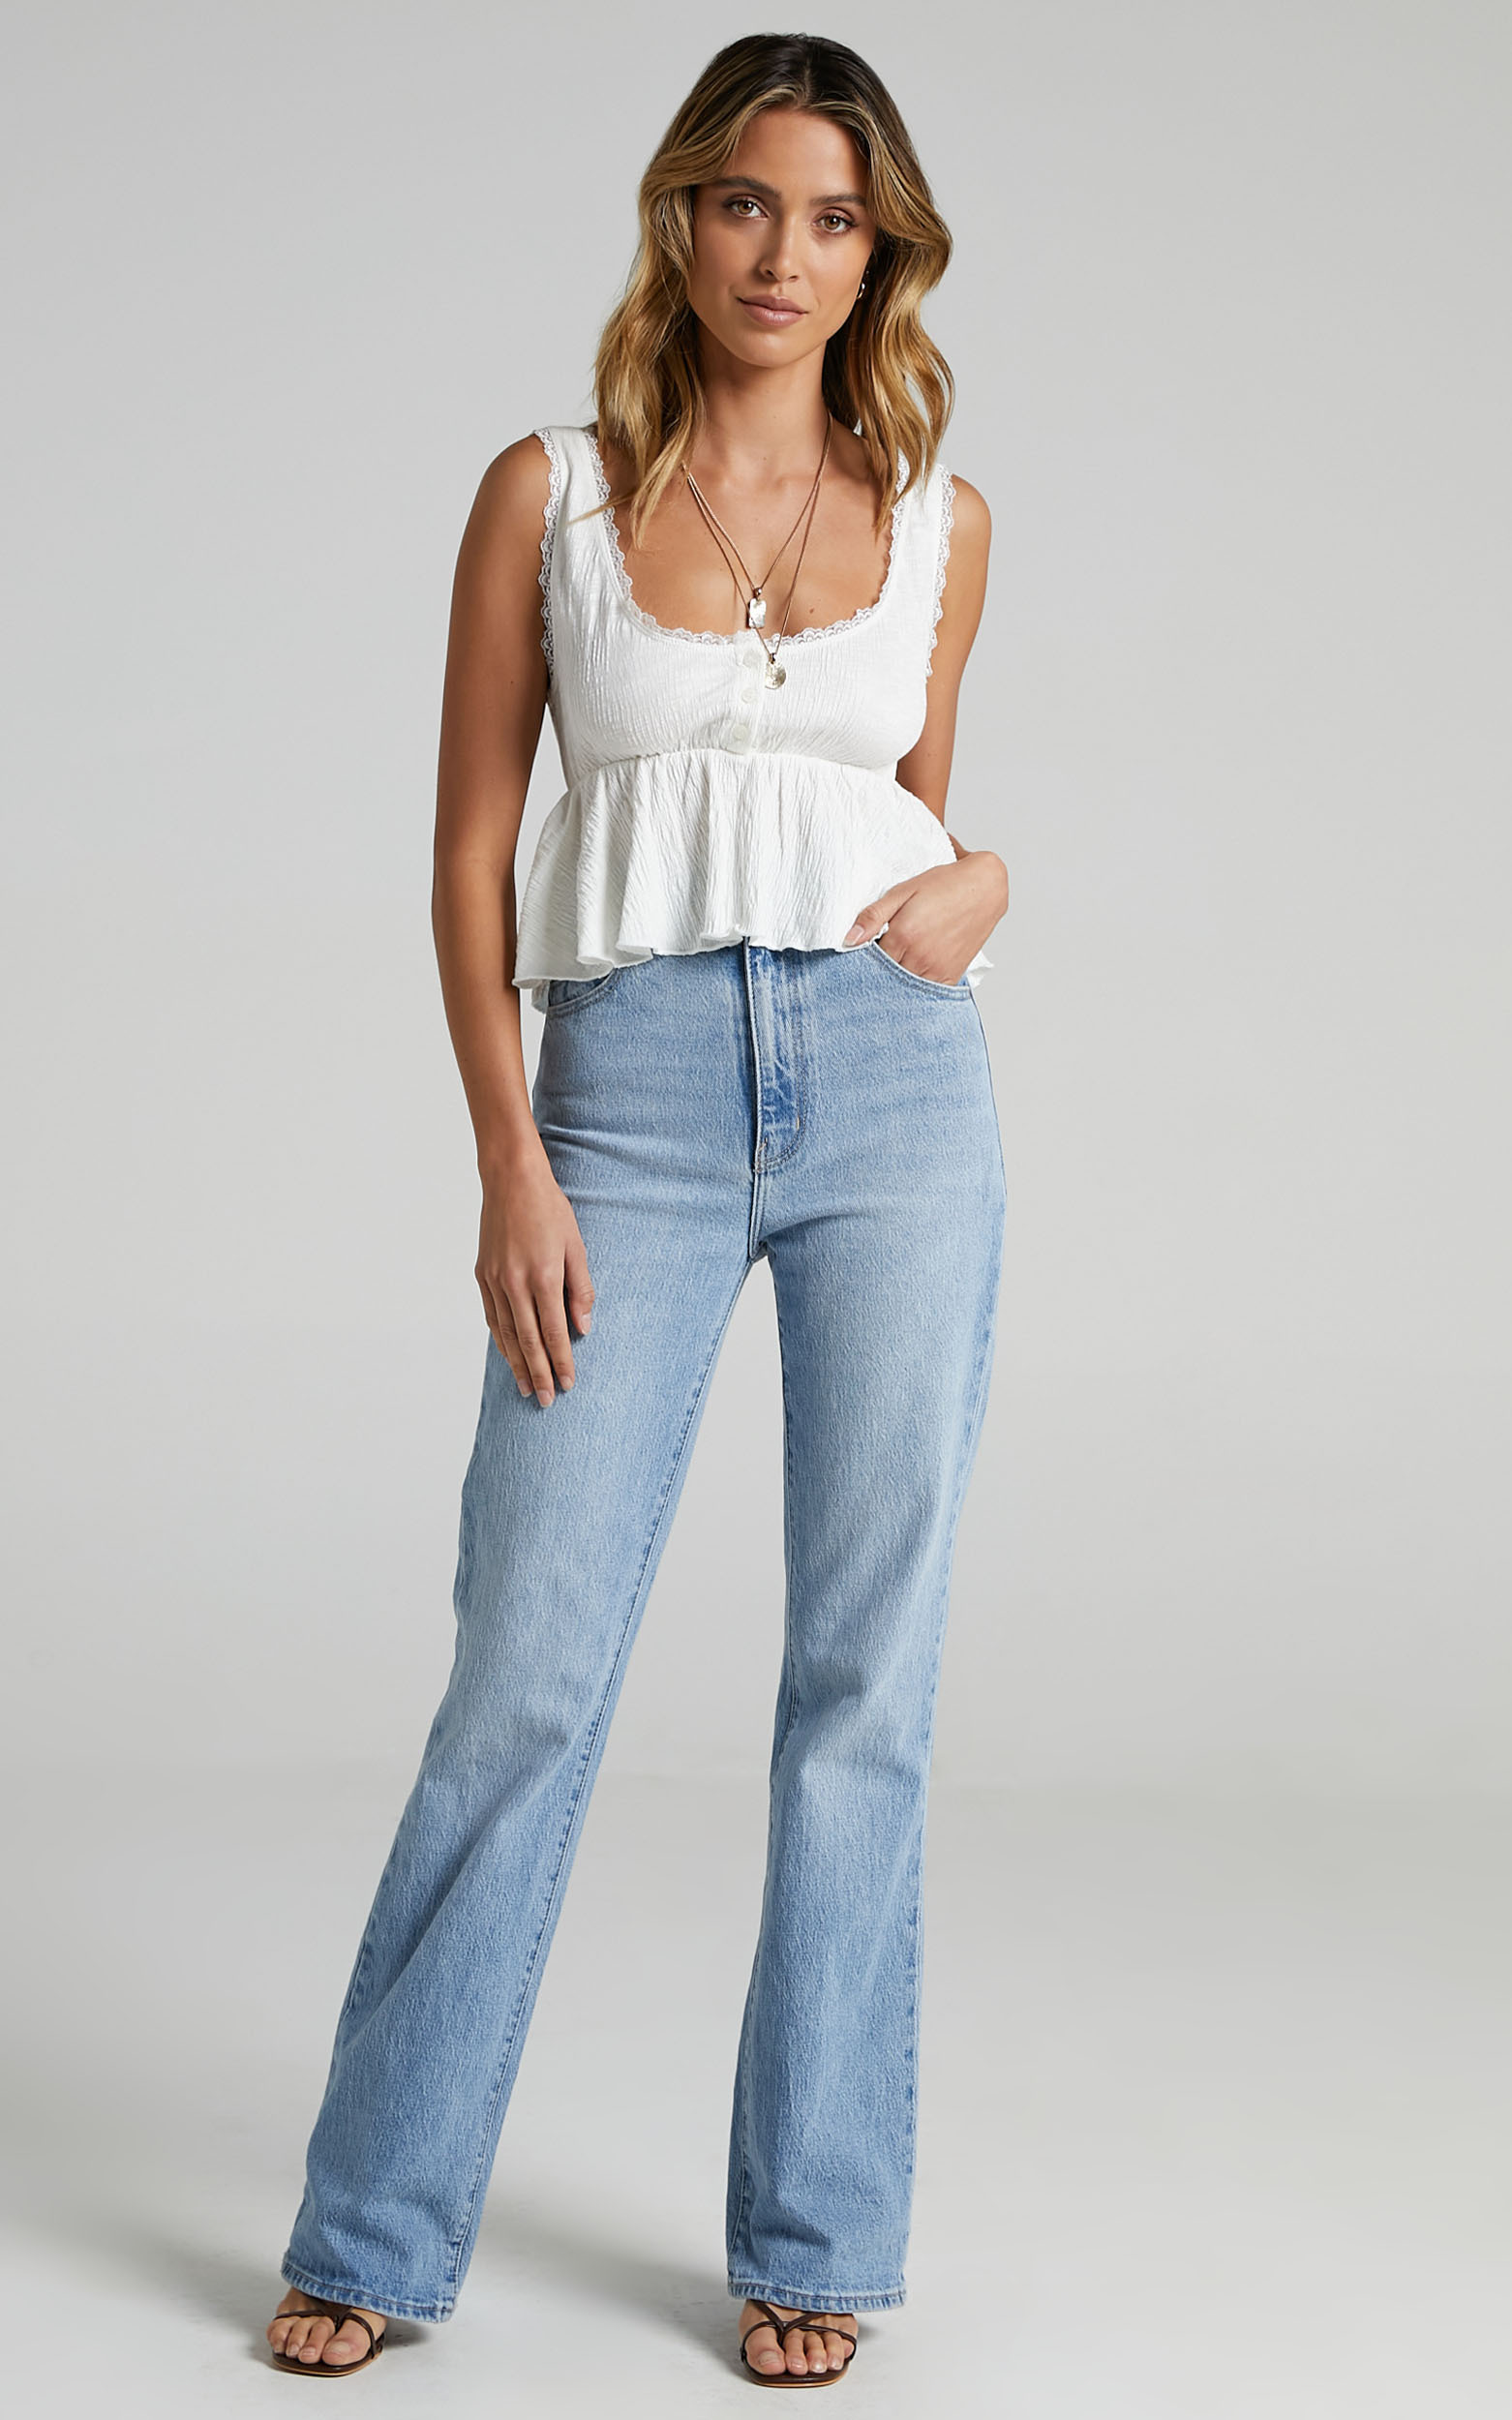 Valma Top in White - 06, WHT2, hi-res image number null